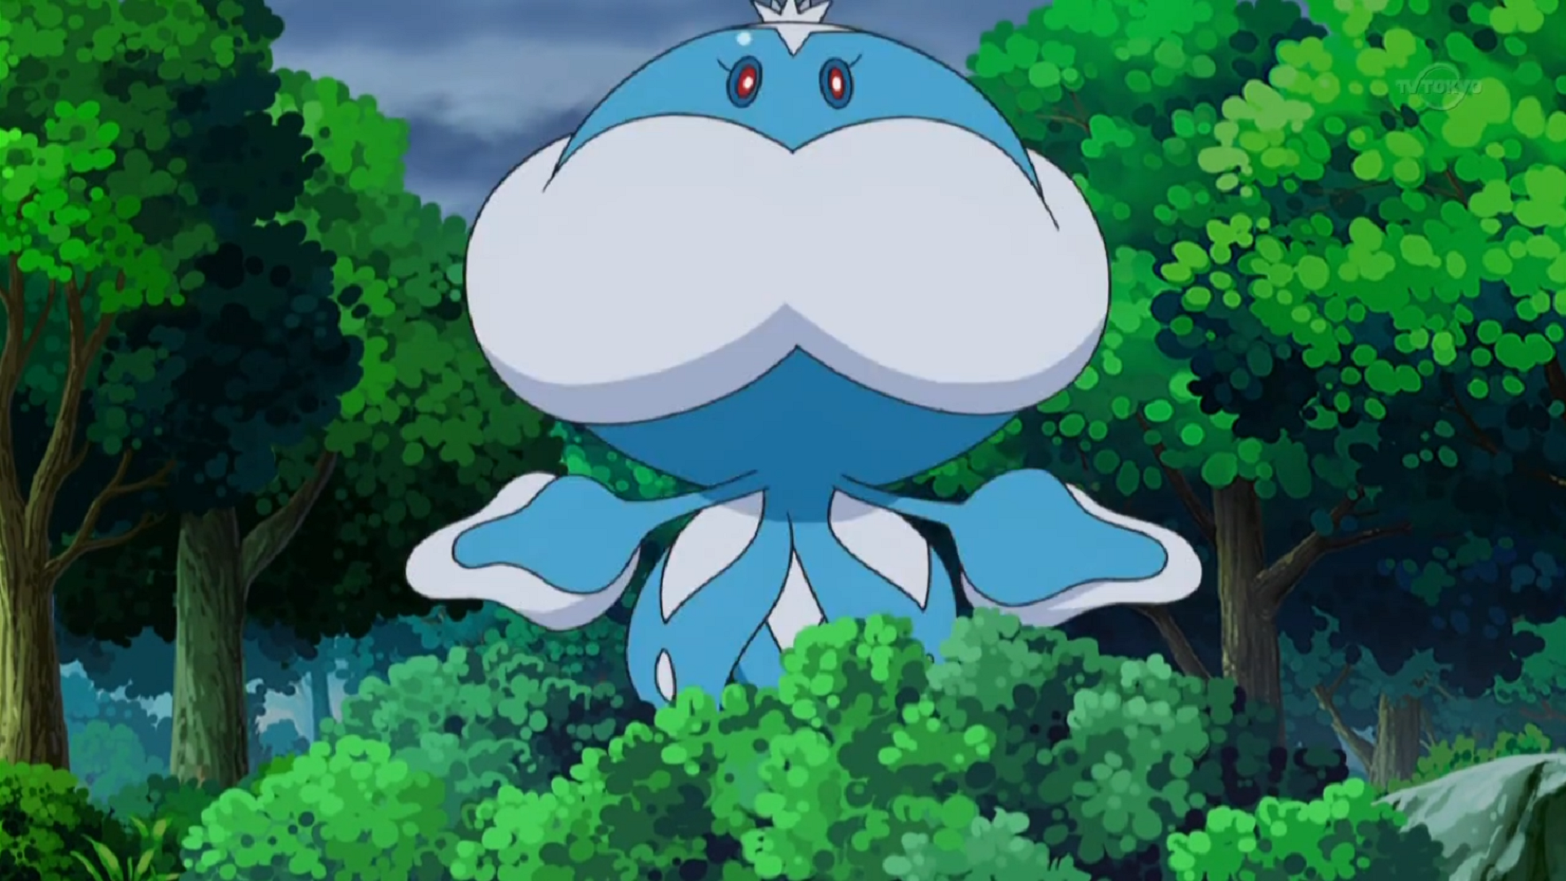 Rizzo owns a male Jellicent which was used to fight Volcarona and Ash's Krokorok.